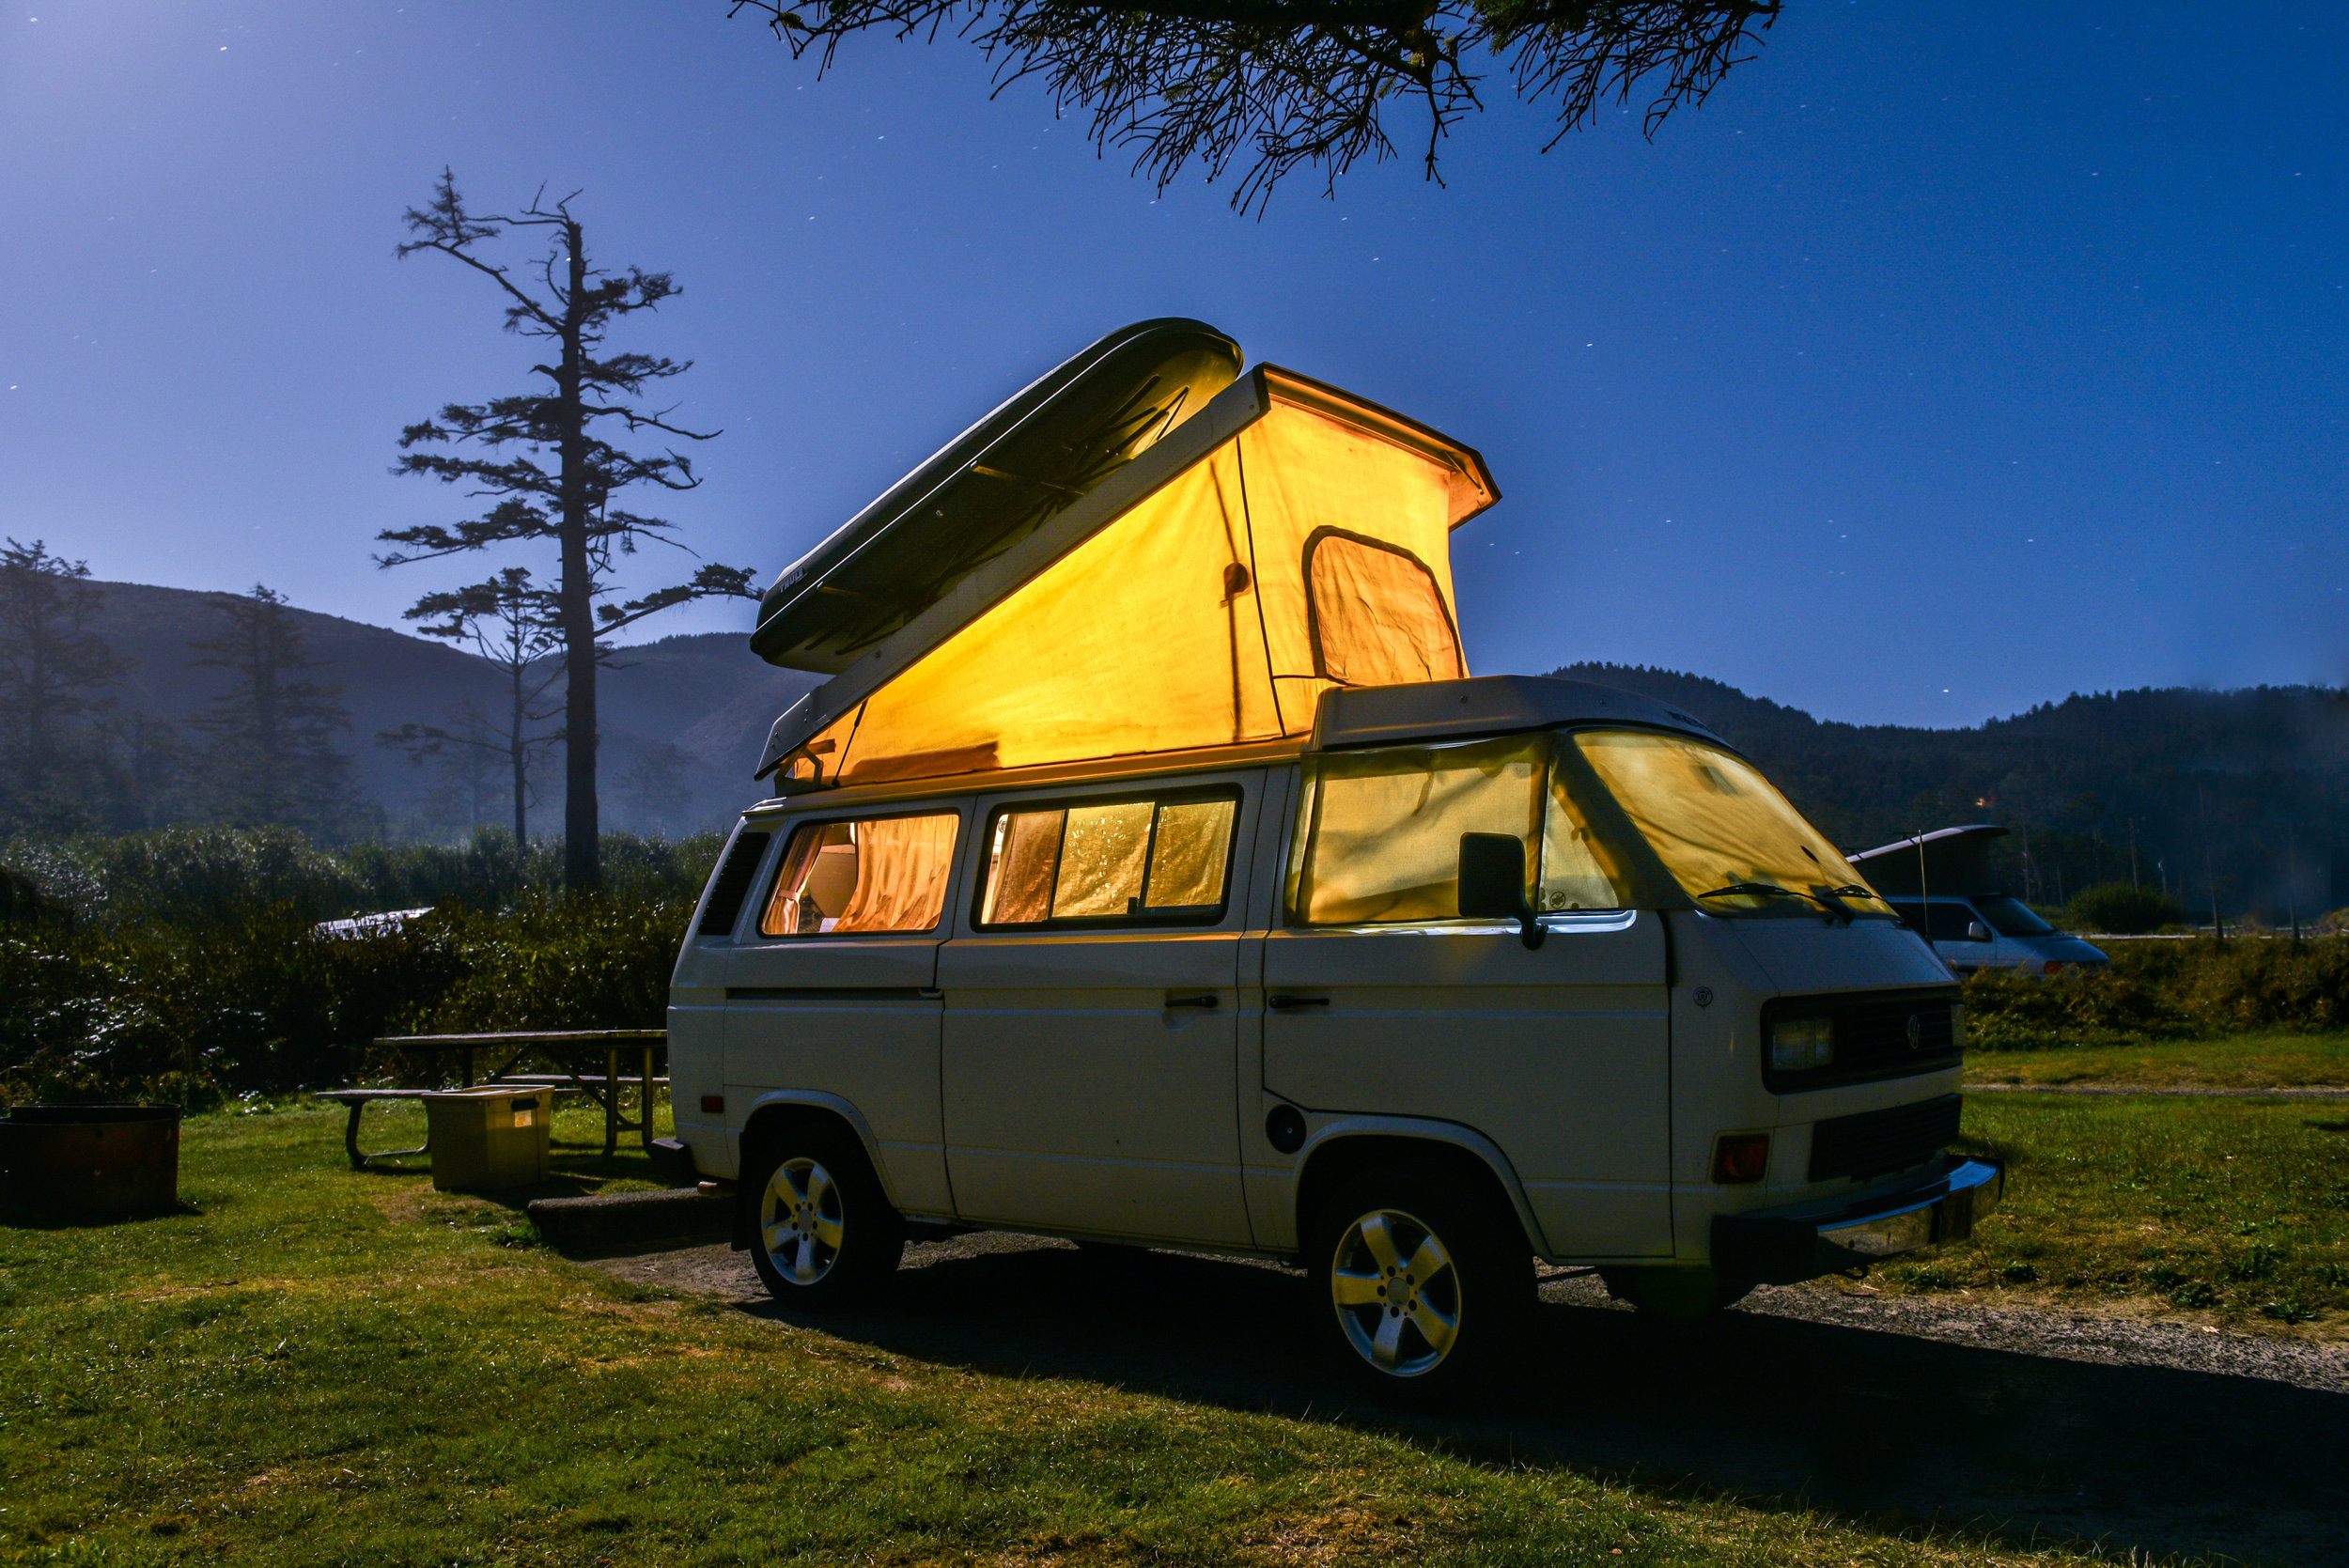 A perfect night in a GoCamp camper van.